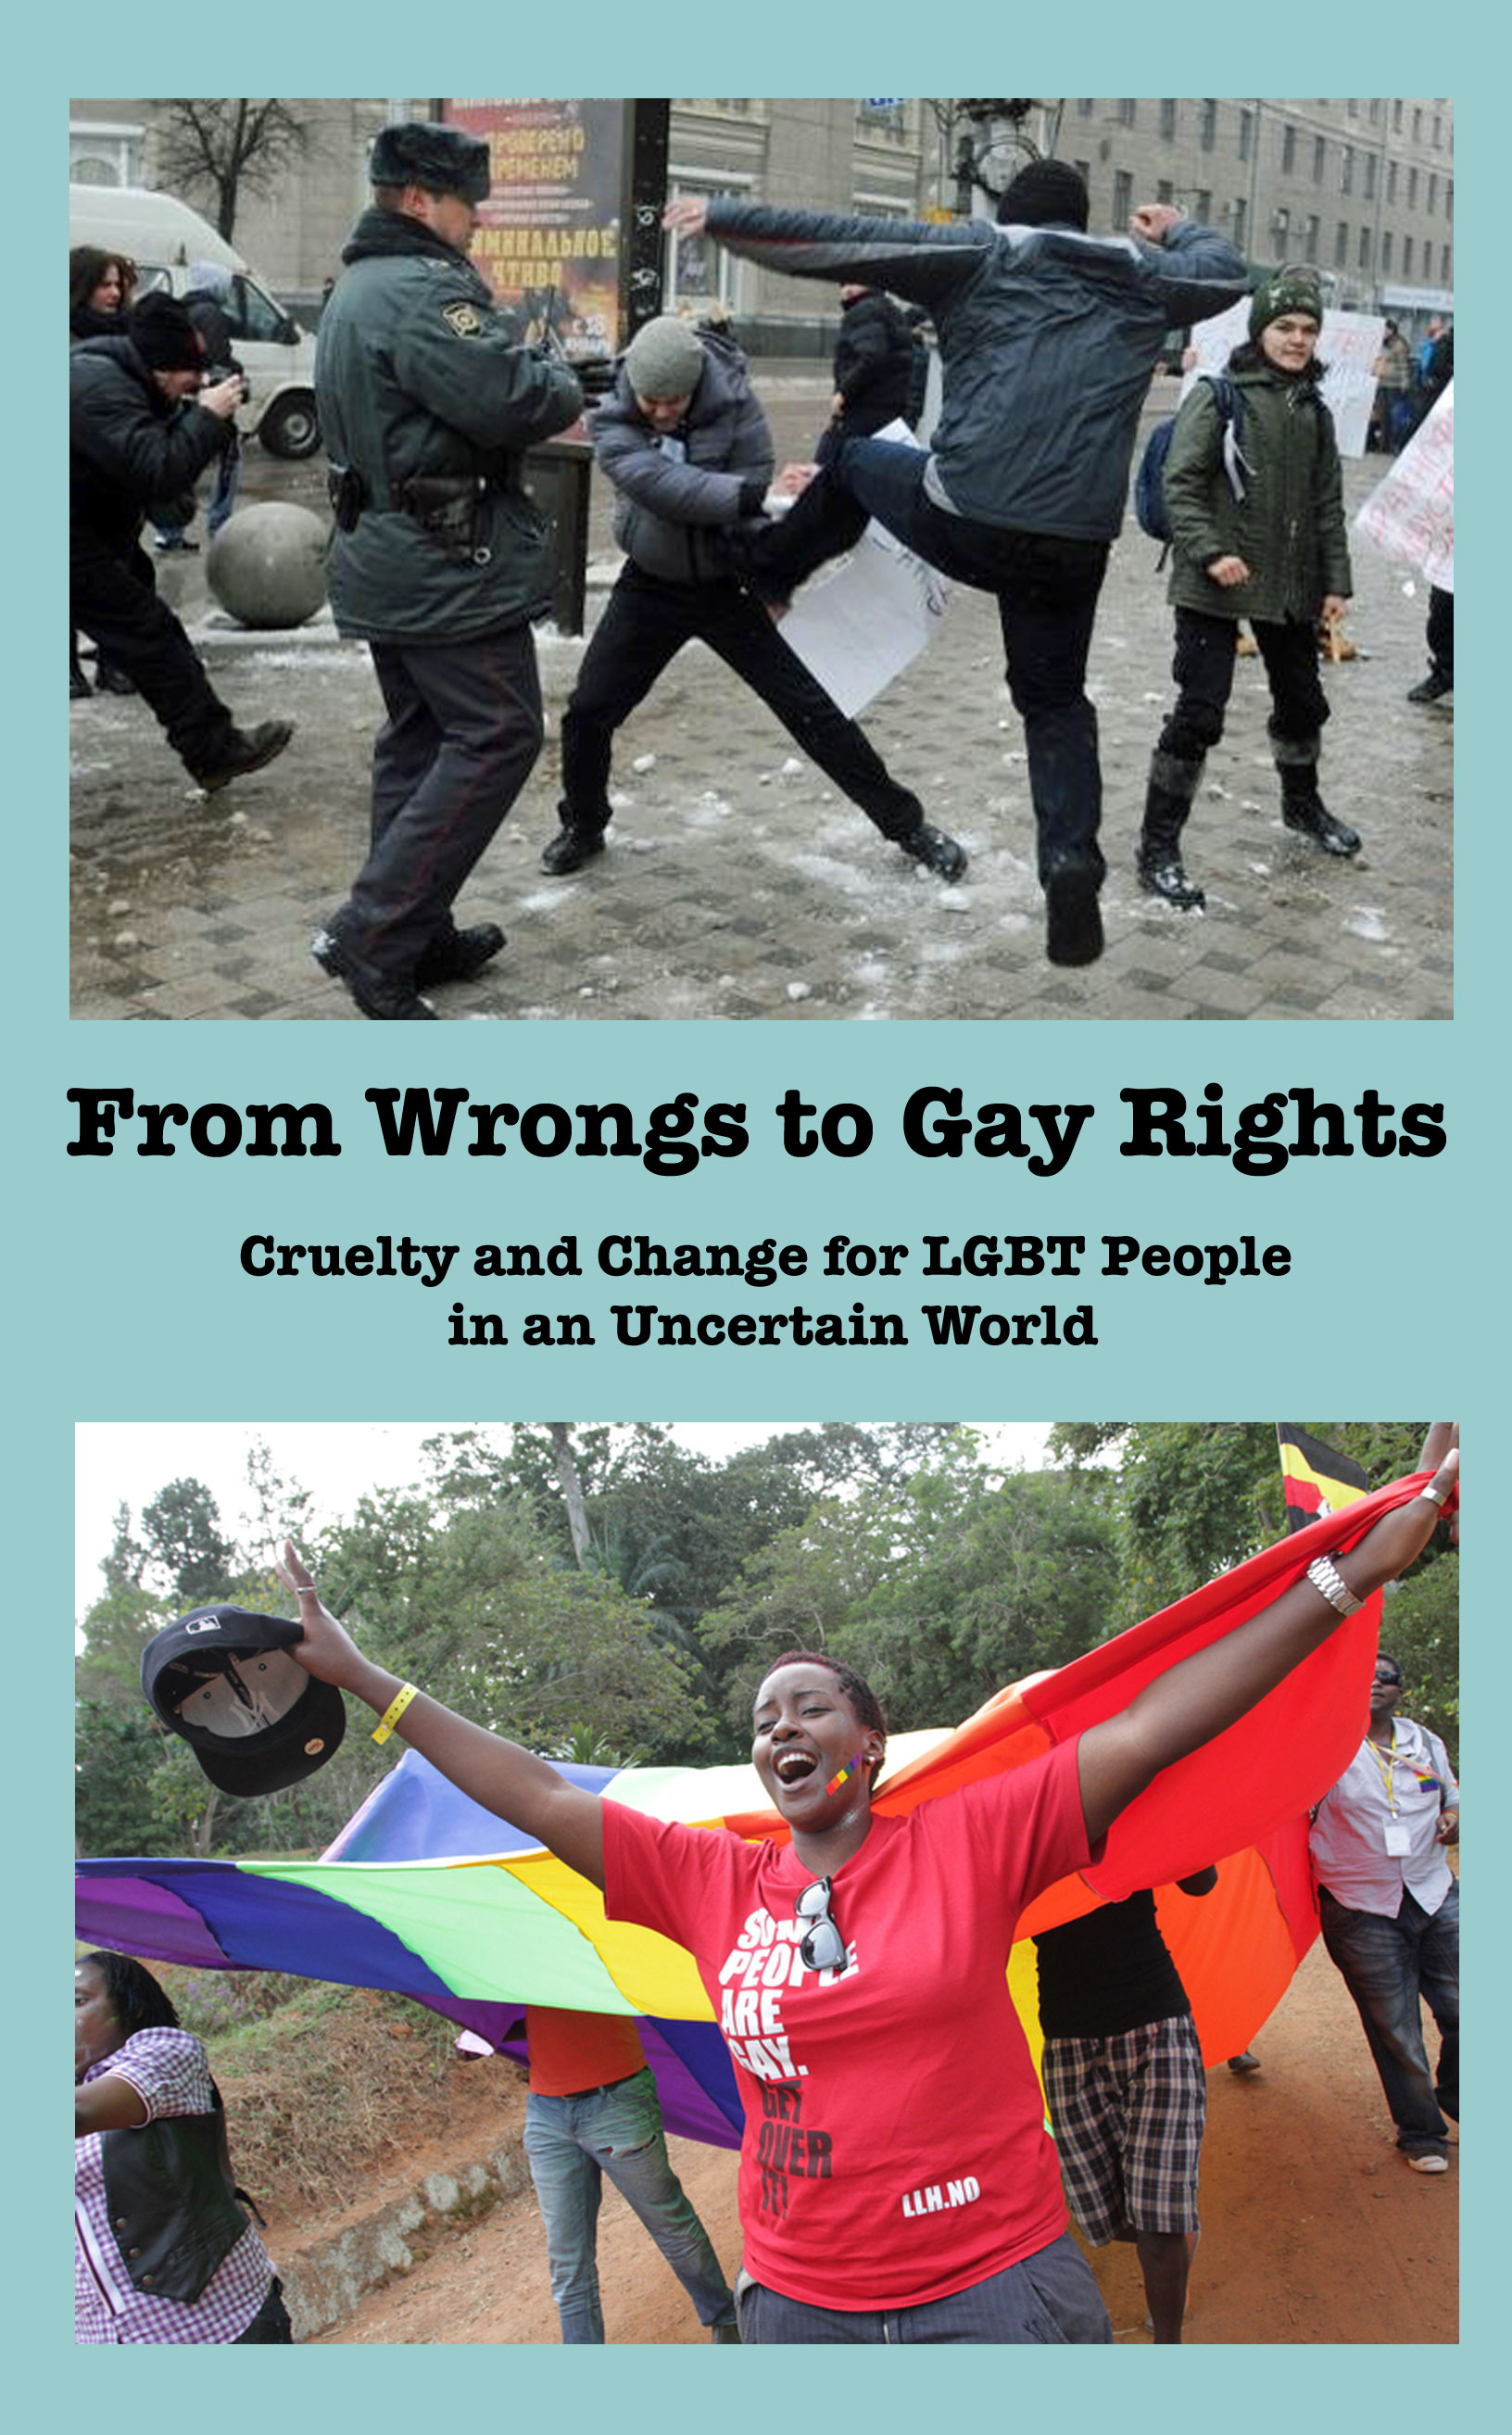 Cover-FULL-Wrongs-to-gay-rights-2013-v8-022013-lt-steel-blue-backgrd